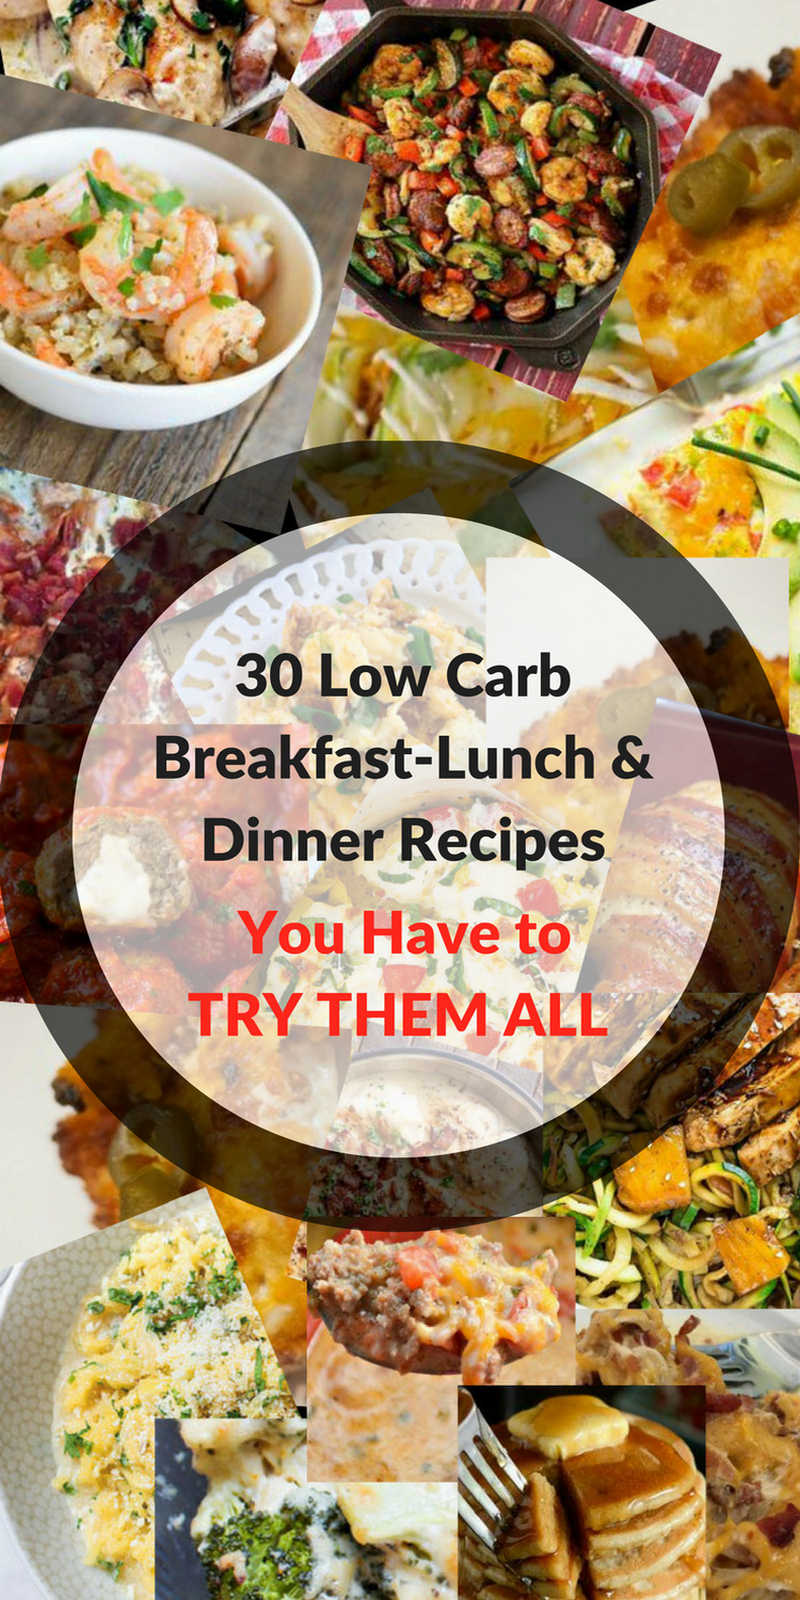 30 Low Carb Diet Recipes You Have to Try | 10 Recipes for Each Meal | Recipes | Weight Loss Food | Weight Loss Recipes | Healthy Meals | Weight Loss Snack Recipes | Weight Loss Dinner Recipes | Weight Loss Dessert Recipes | Weight Loss Low Carb Recipes | Weight Loss Lunch Recipes | Weight Loss Breakfast Recipes | ARoadtoTravel.com